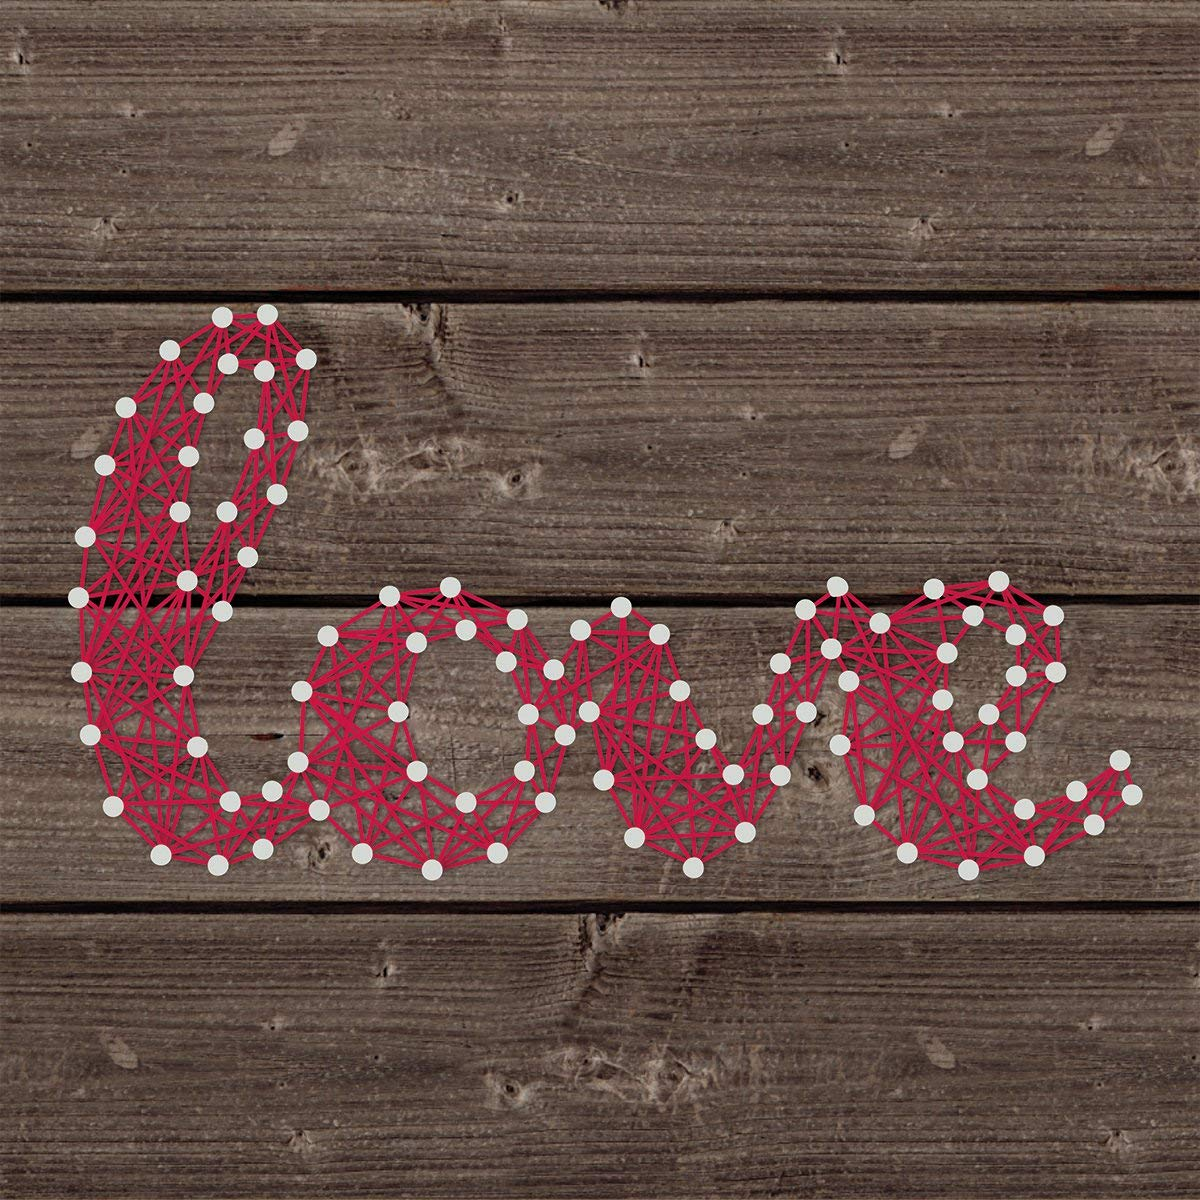 Jillibean-soup String Art KIT 8''X8''-Love